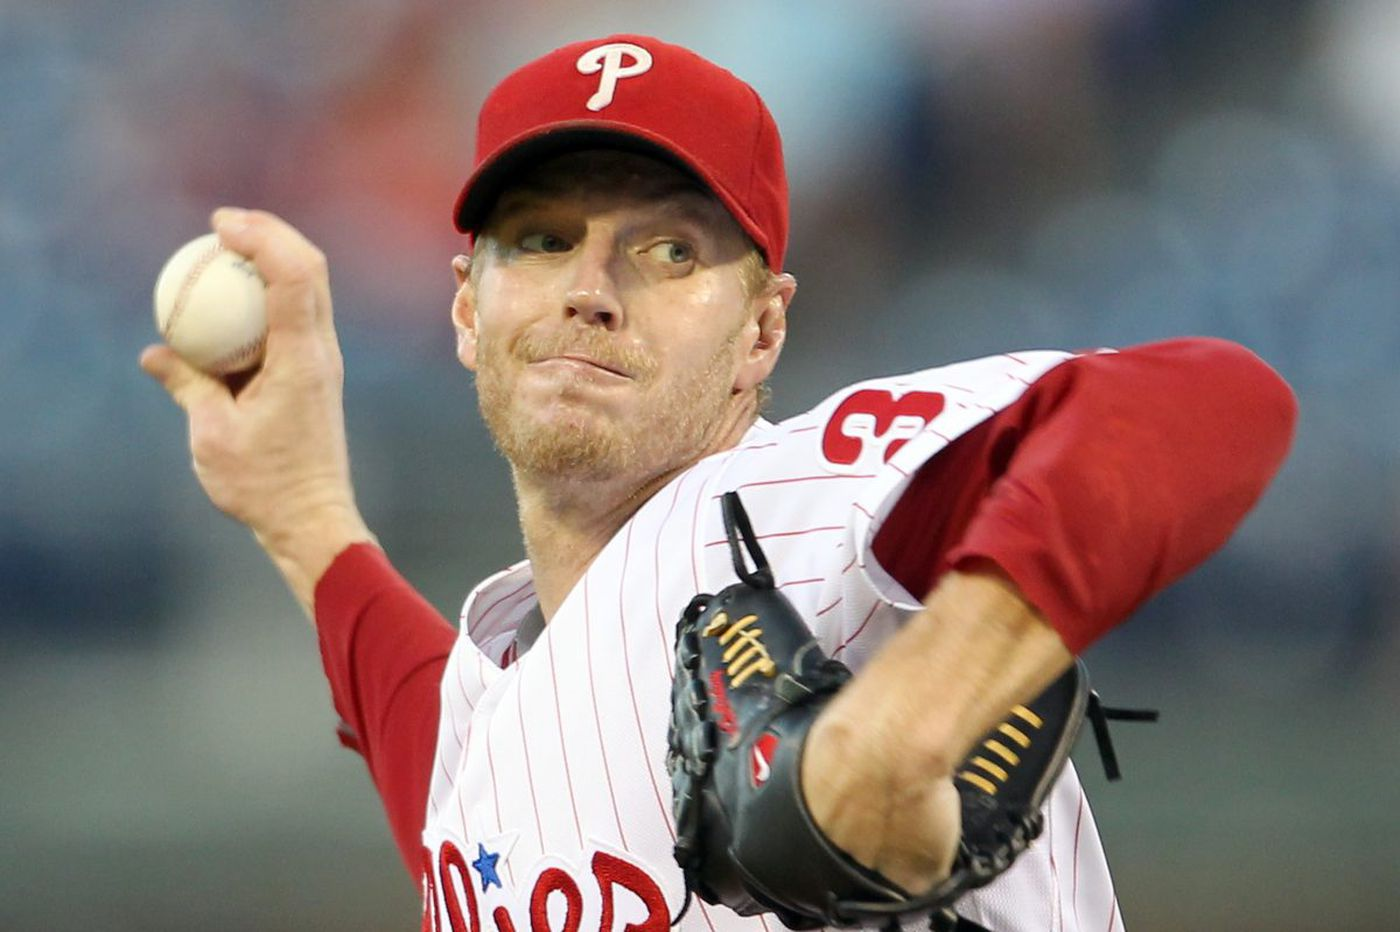 Former Phillies pitcher Roy Halladay dies in plane crash